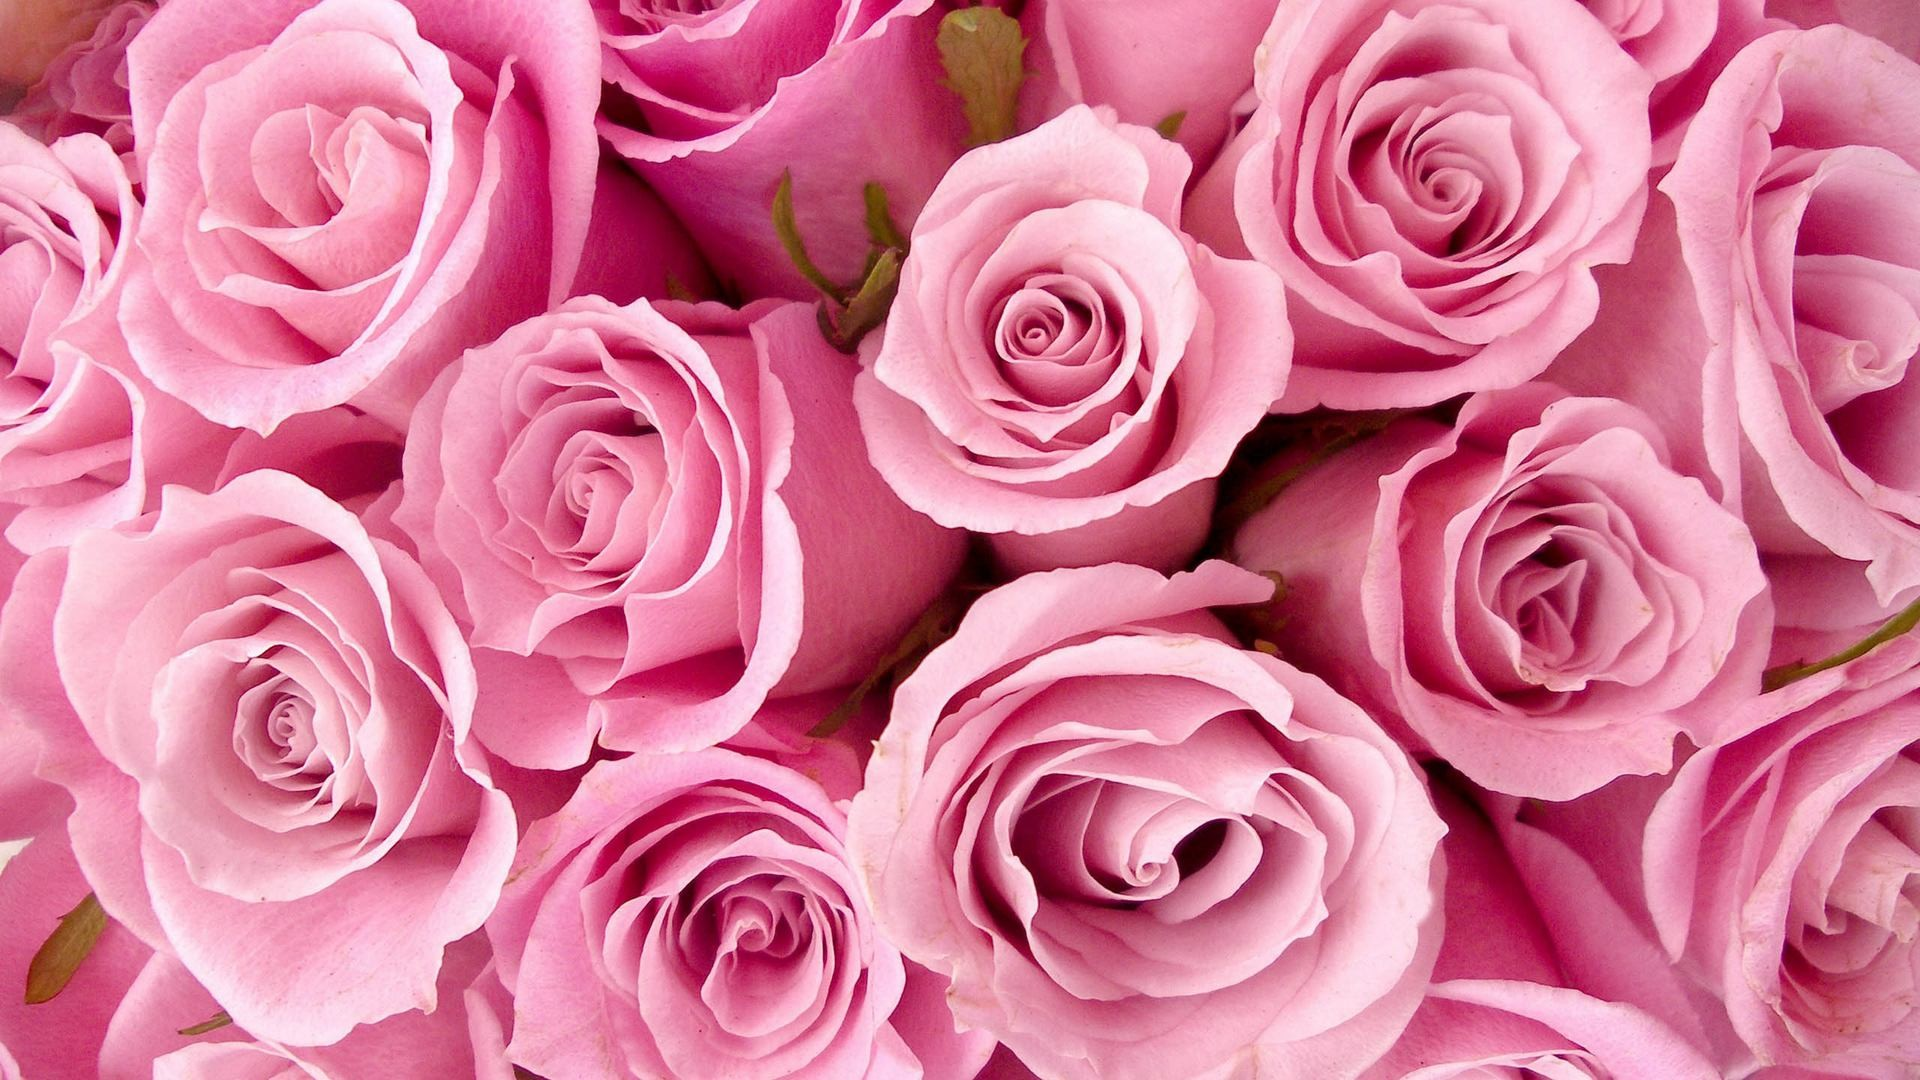 Res: 1920x1080, Pink Roses